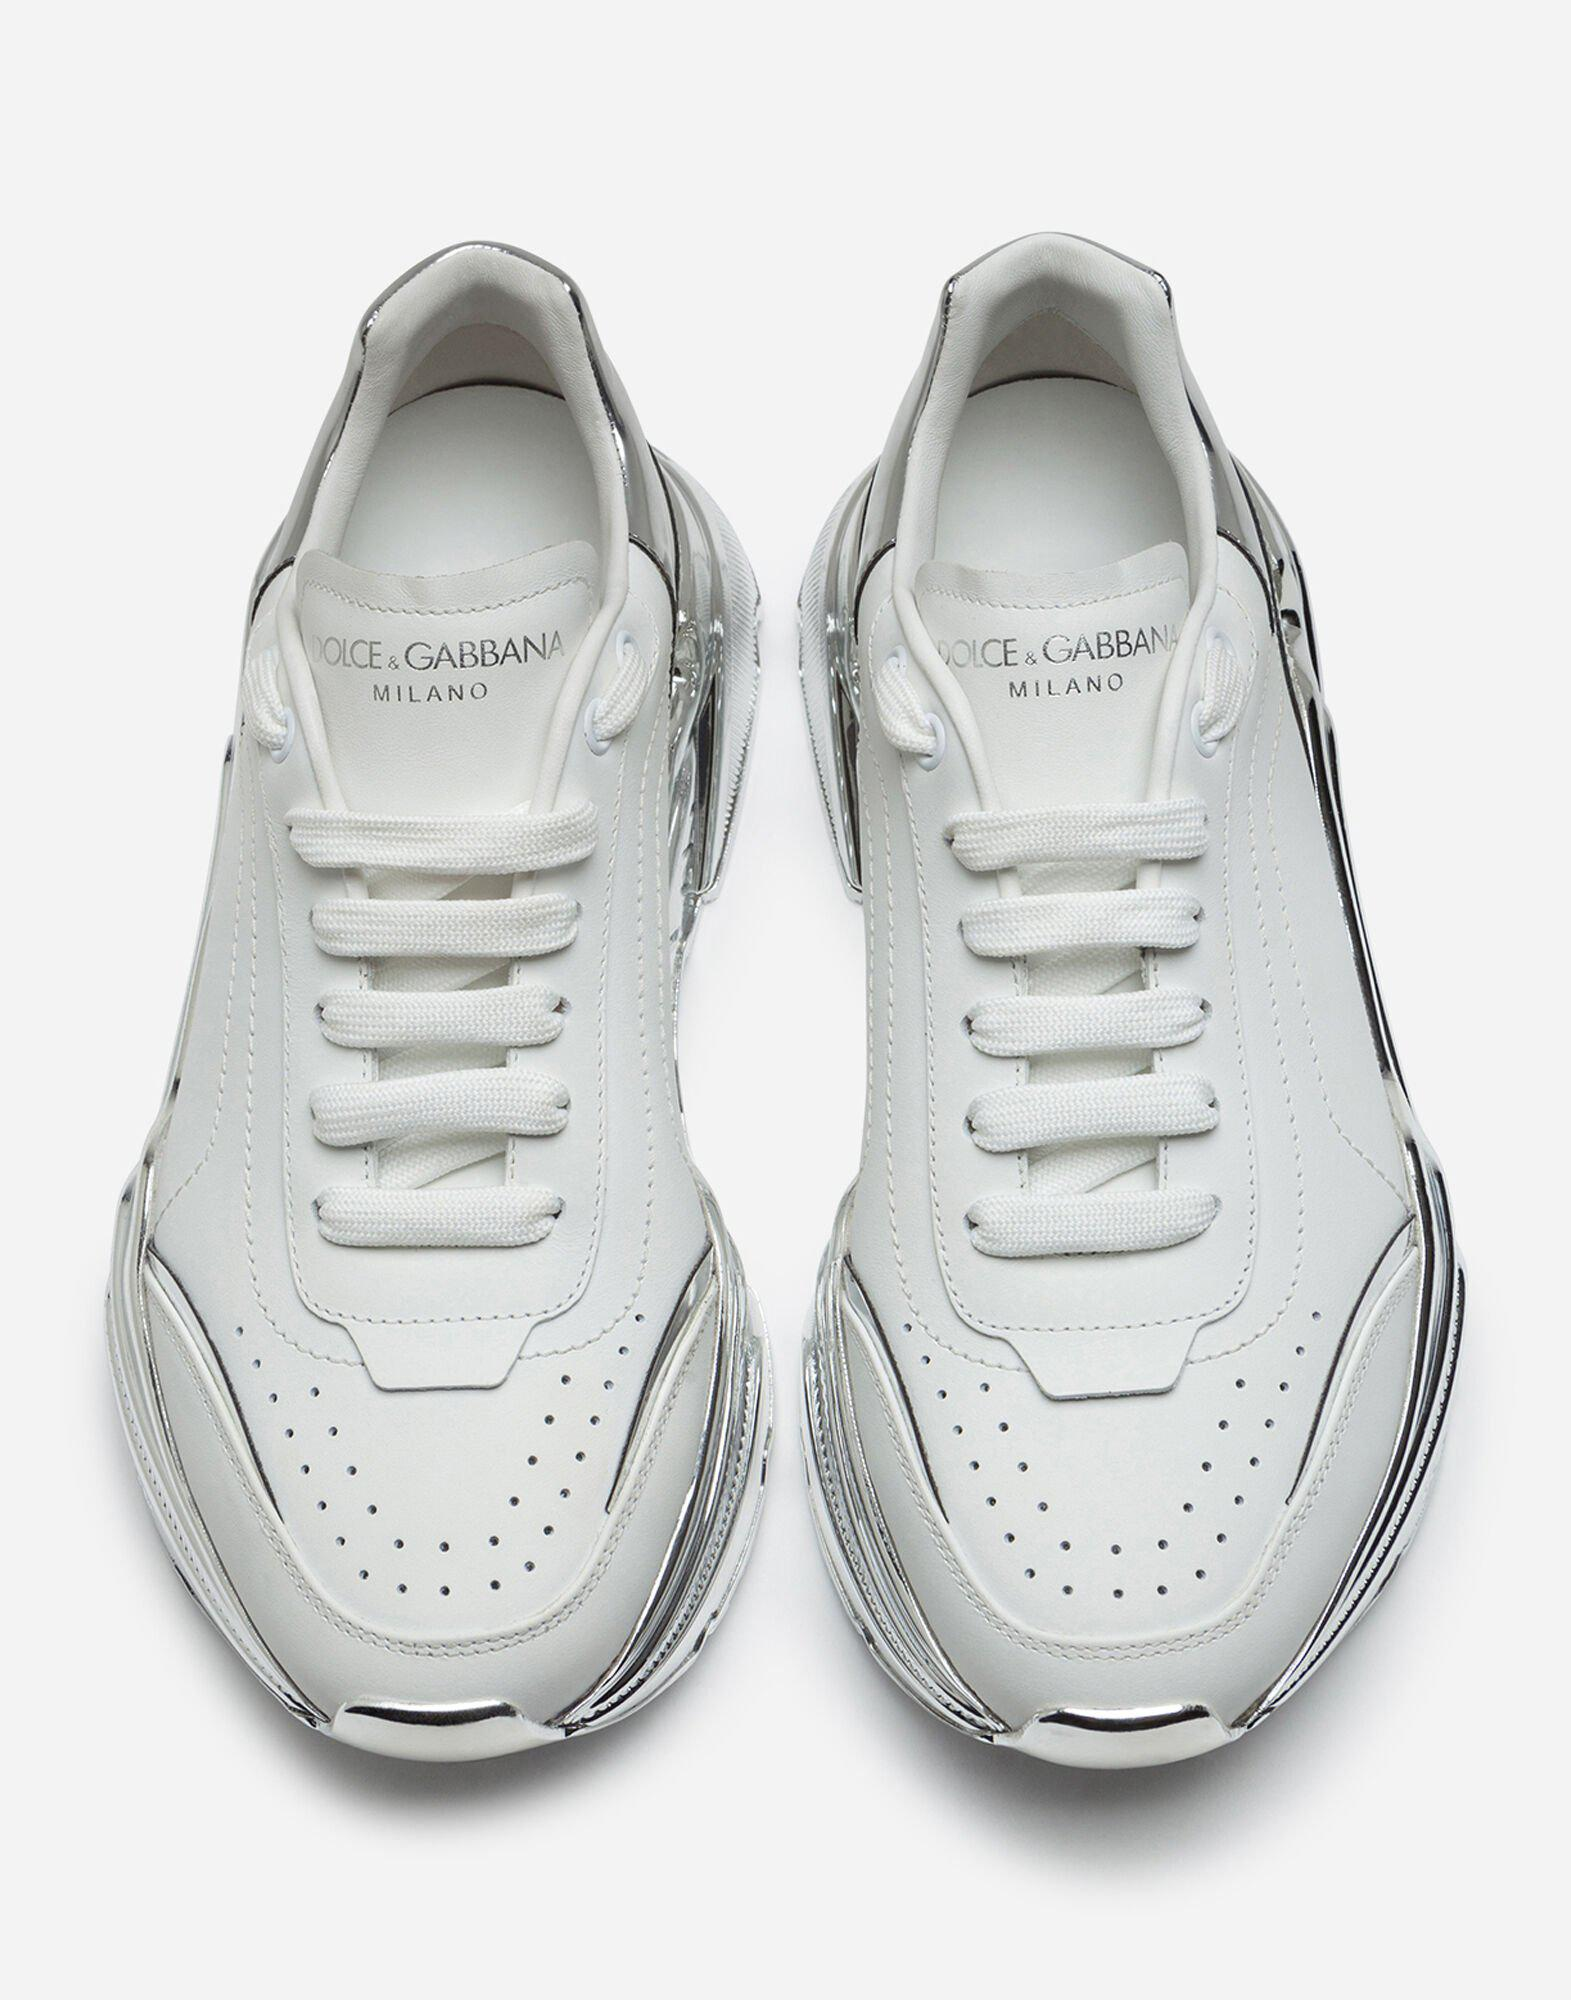 Daymaster sneakers in nappa leather with mirrored bottom 3